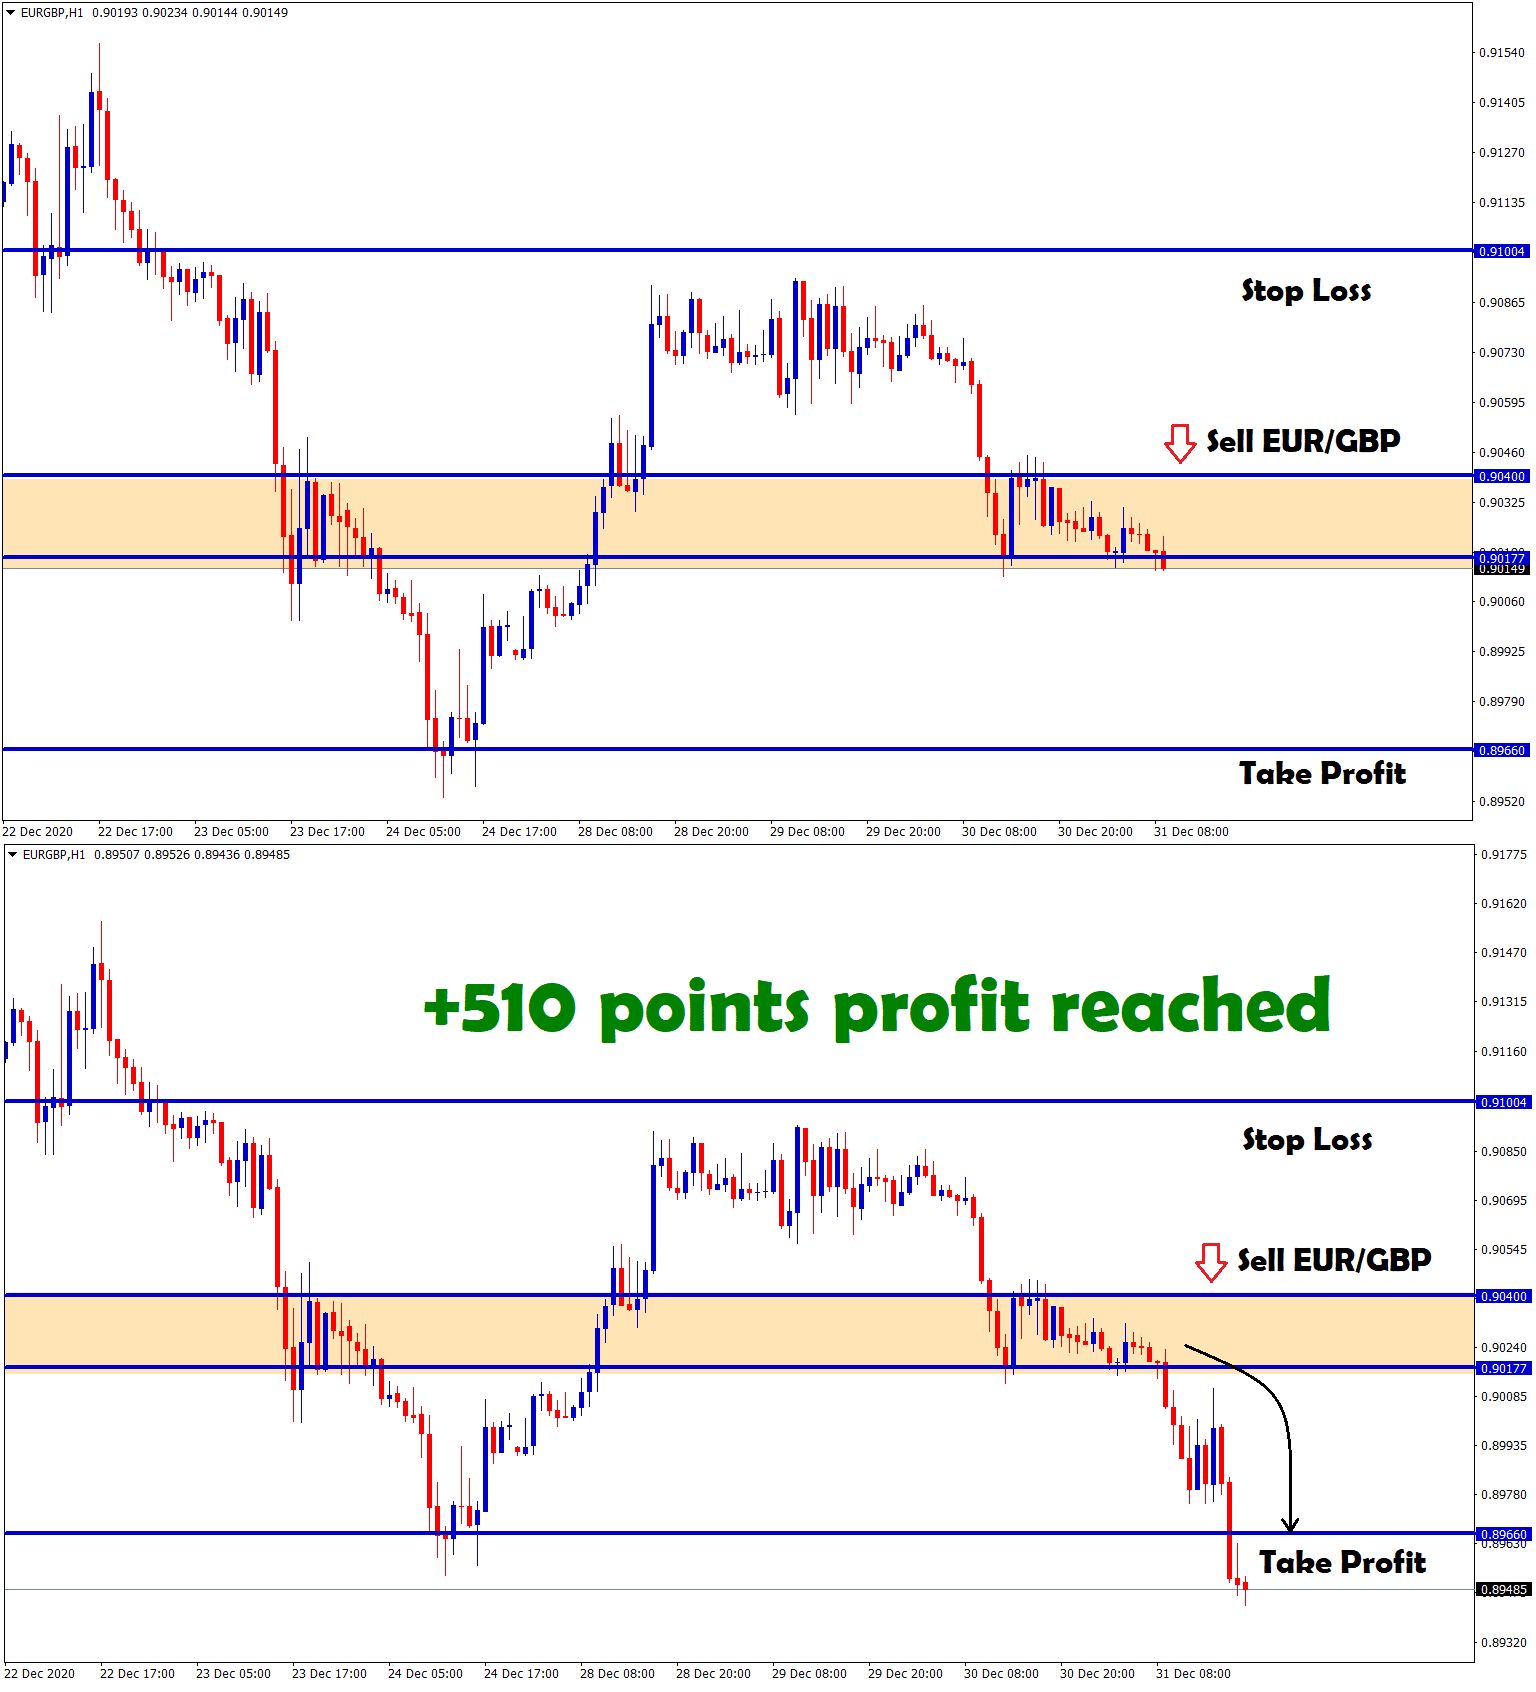 eurgbp reach 510 points profit in sell